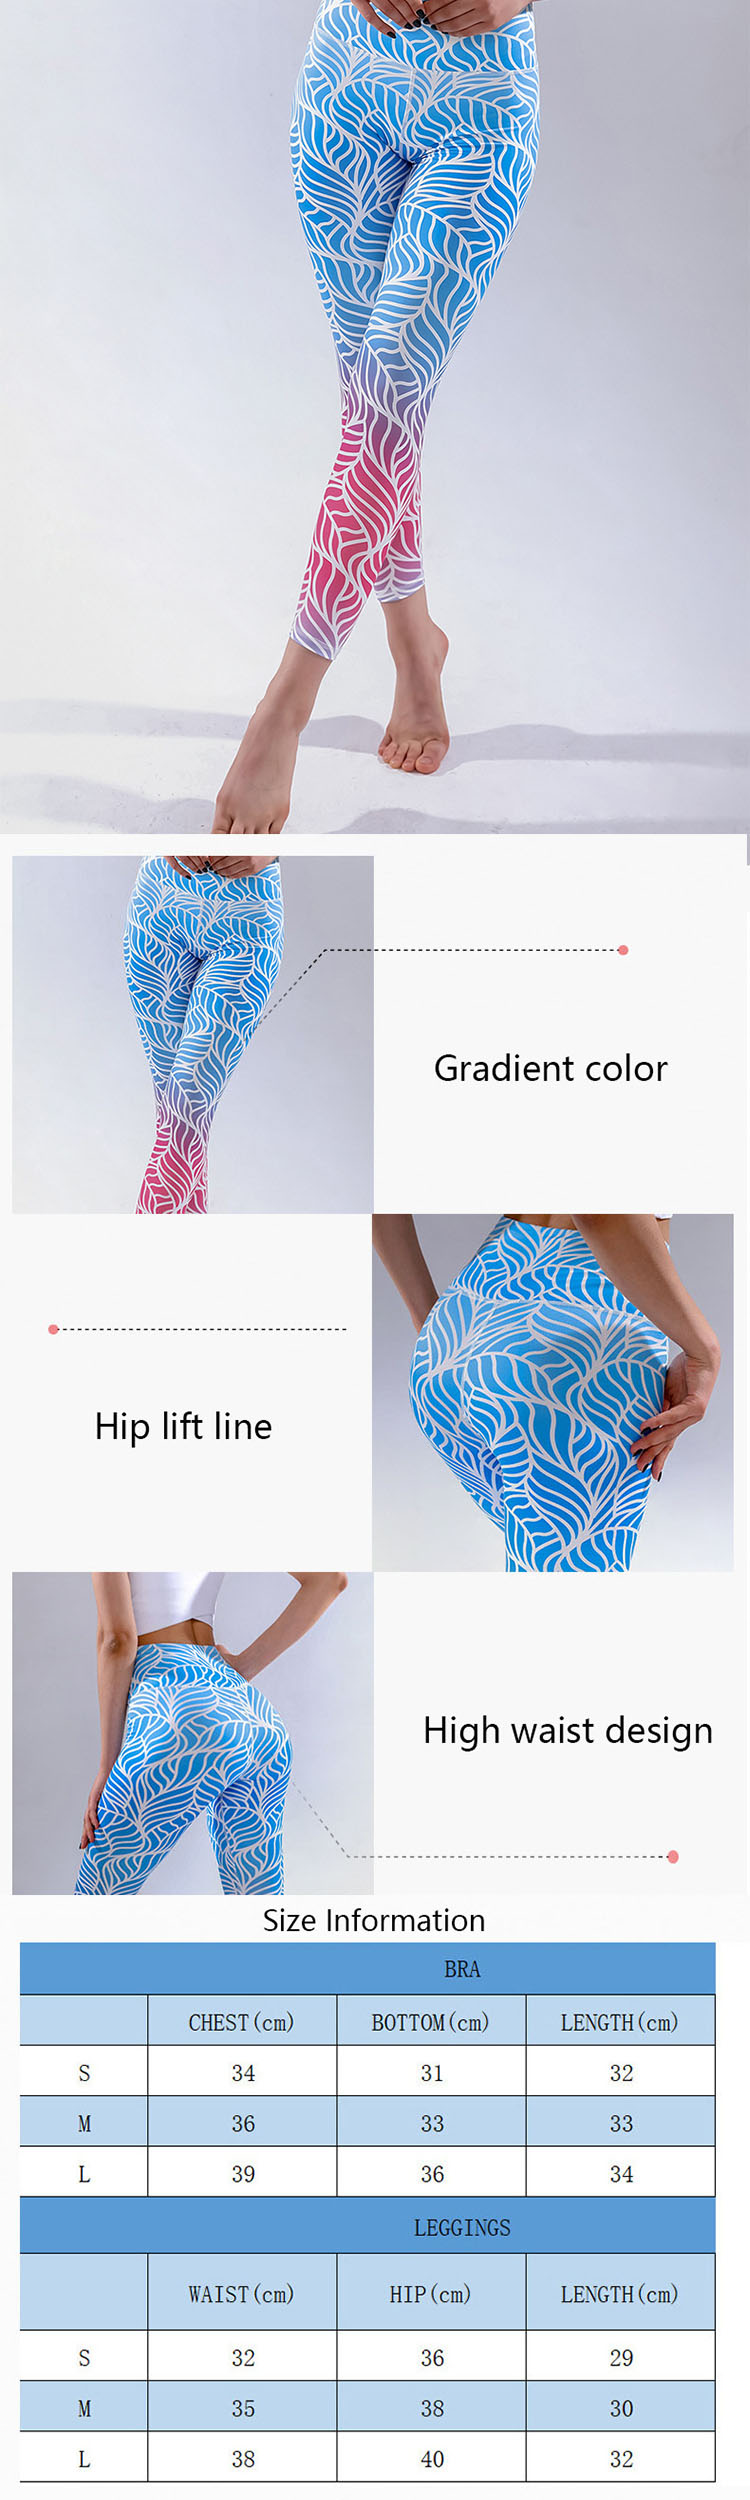 The trend of colorful workout leggings has been in the fashion circle for many years